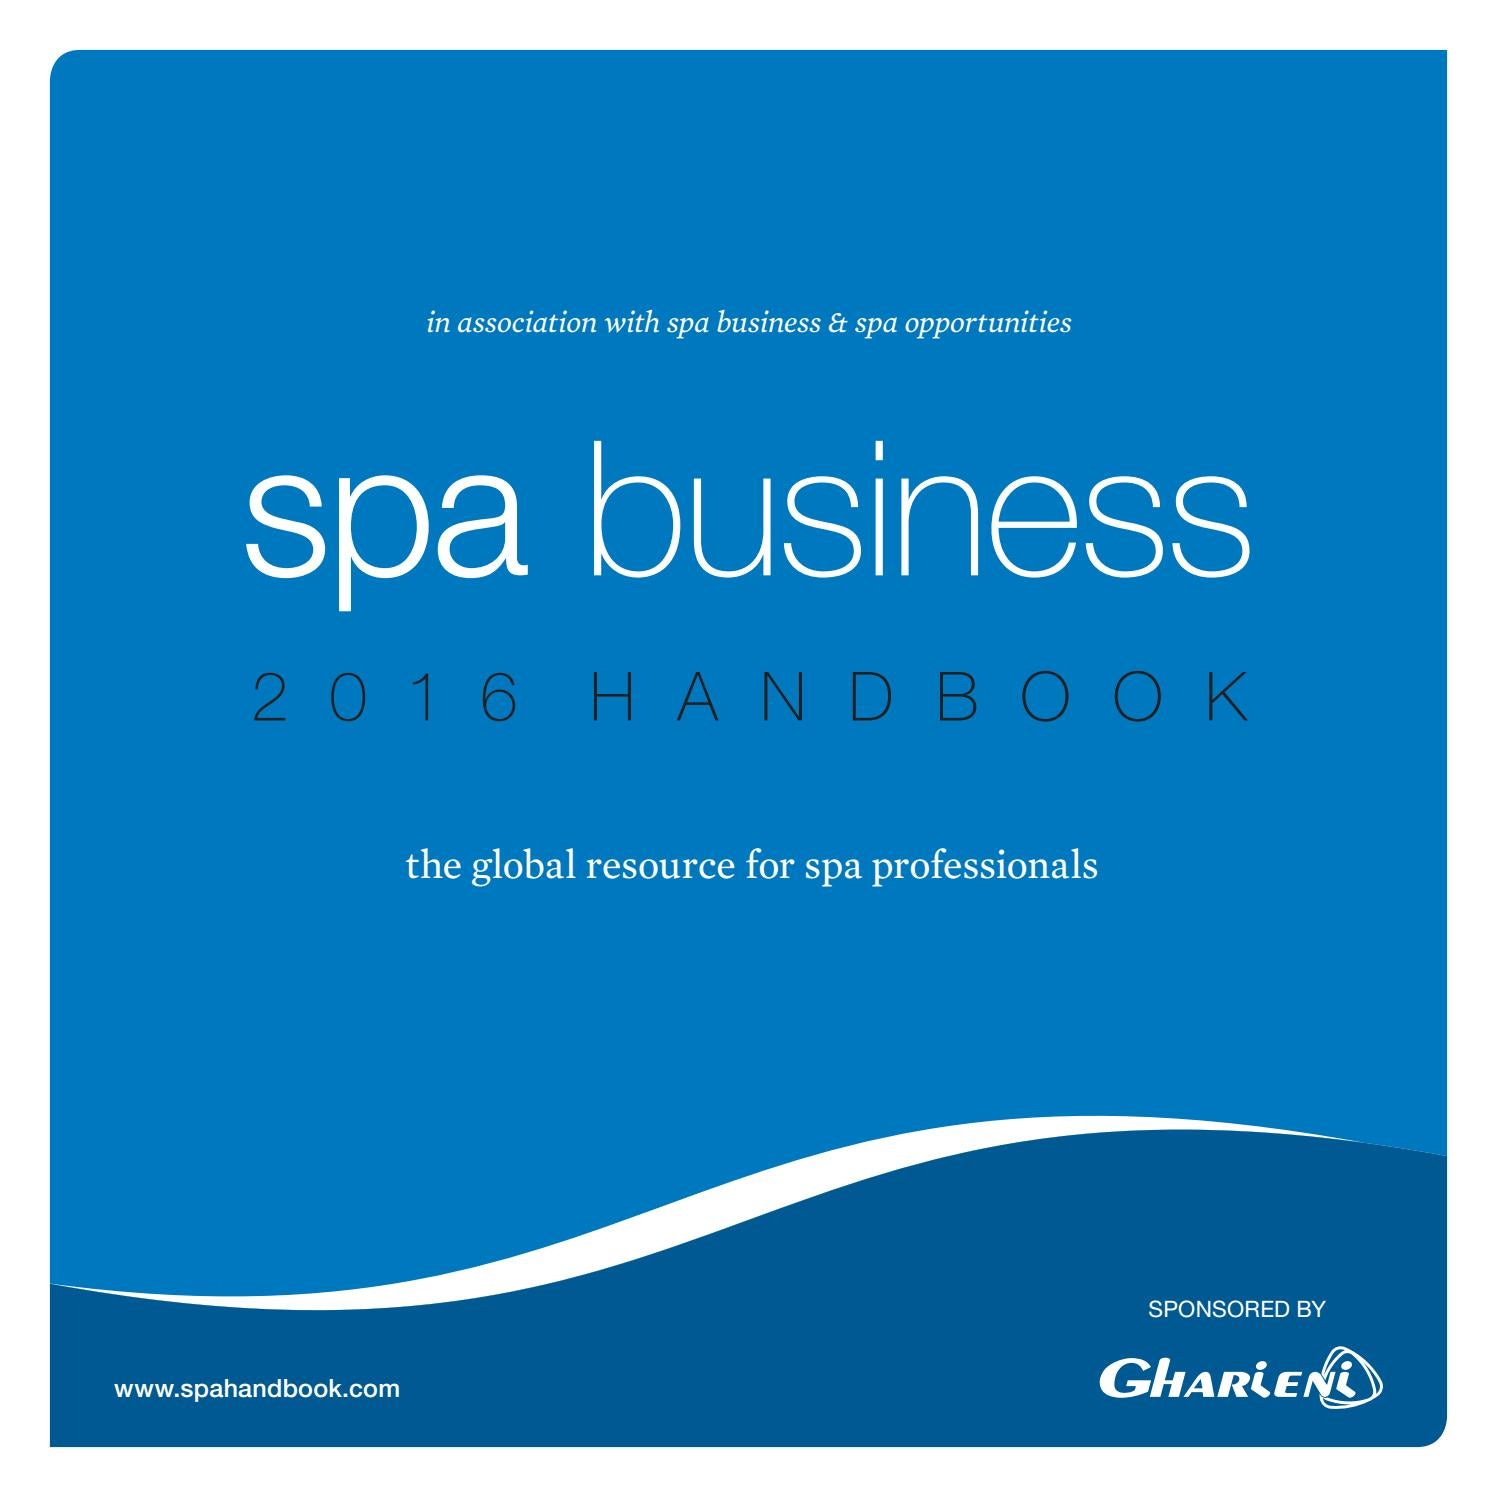 Spa Business Handbook 2016 by Leisure Media - issuu